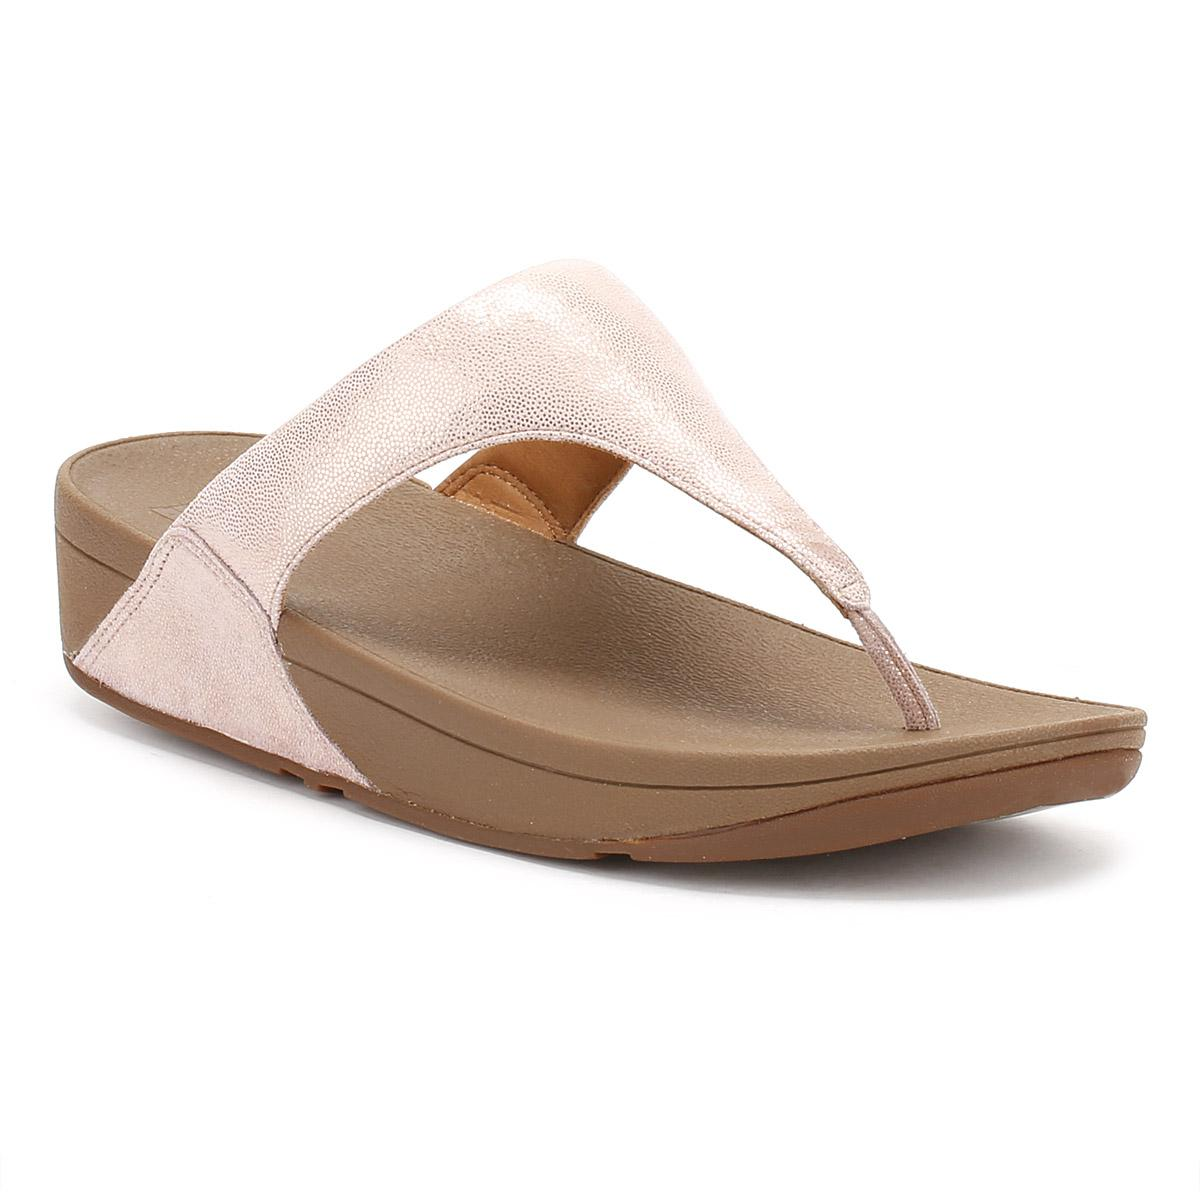 d520b3509 Fitflop Womens Rose Gold Shimmy Suede Toe Post Sandal - Lyst